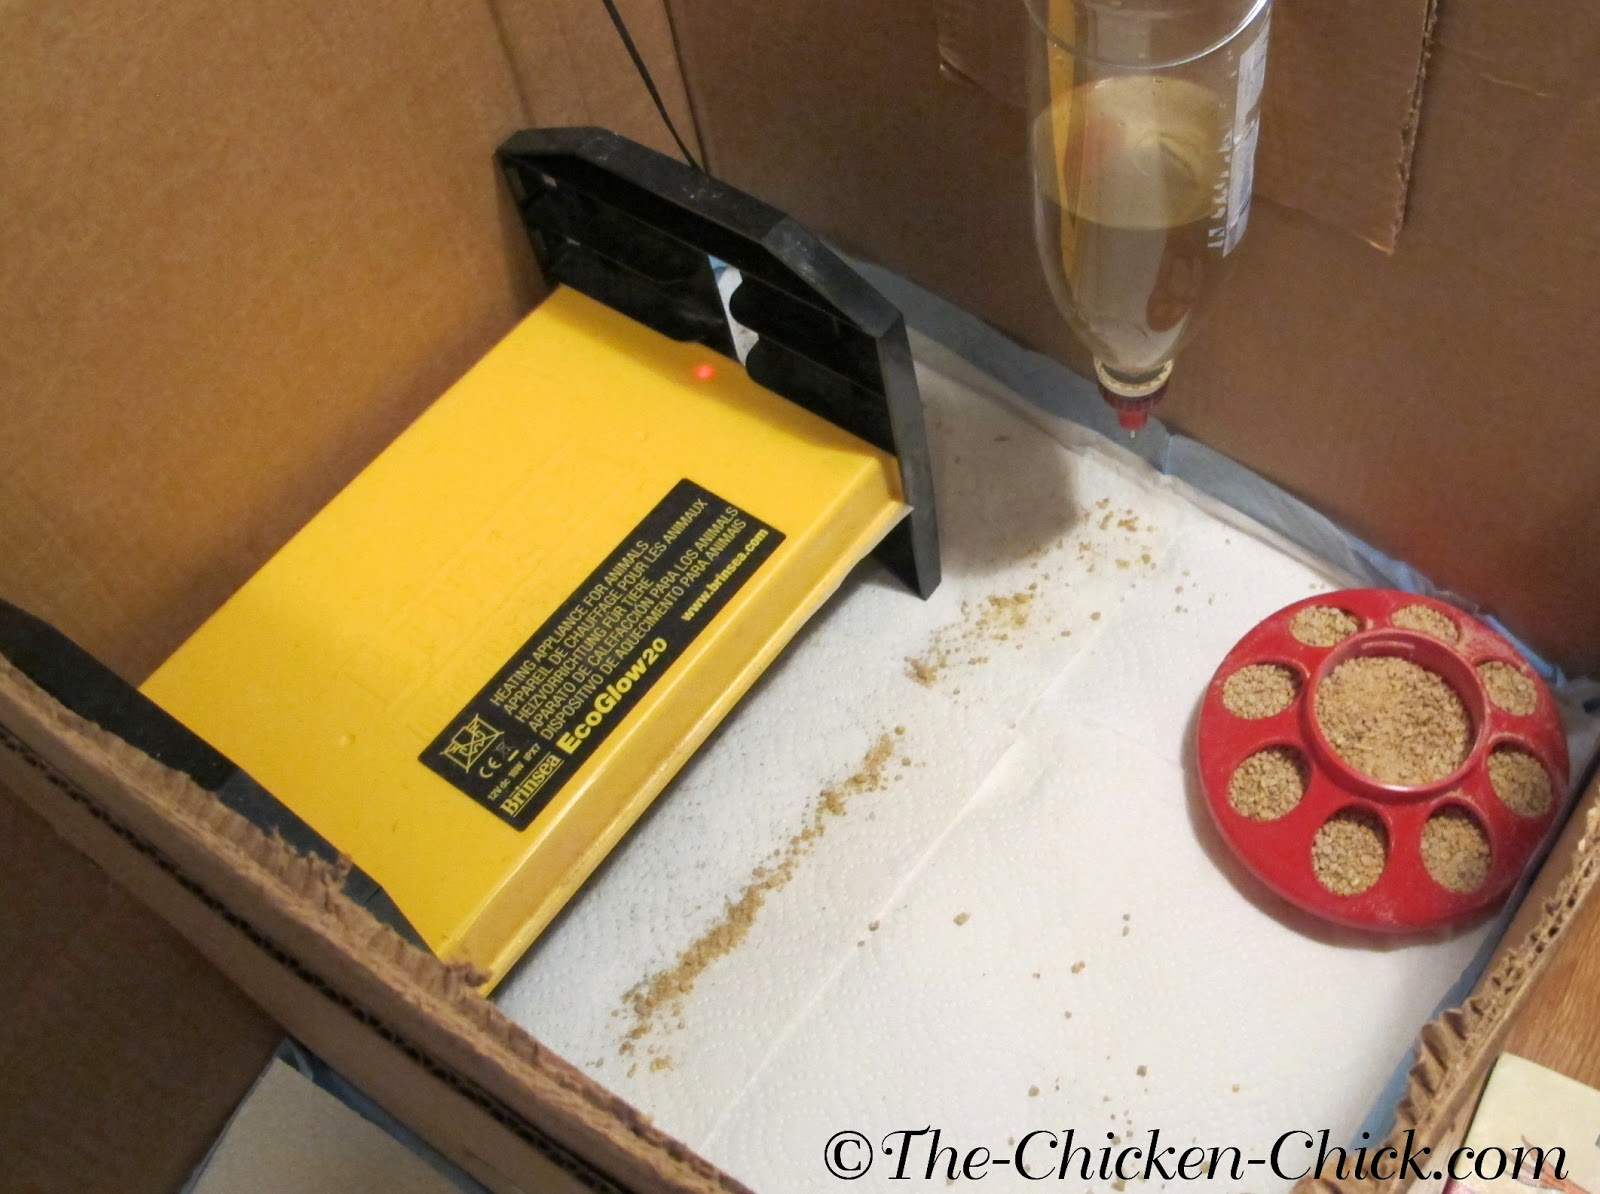 Sometime it is necessary to rescue a chick from a broody hen either because the hen attacks, rejects, or abandons them. I always have a brooder set-up ready on hatch day in the event of rejection by the mother hen.